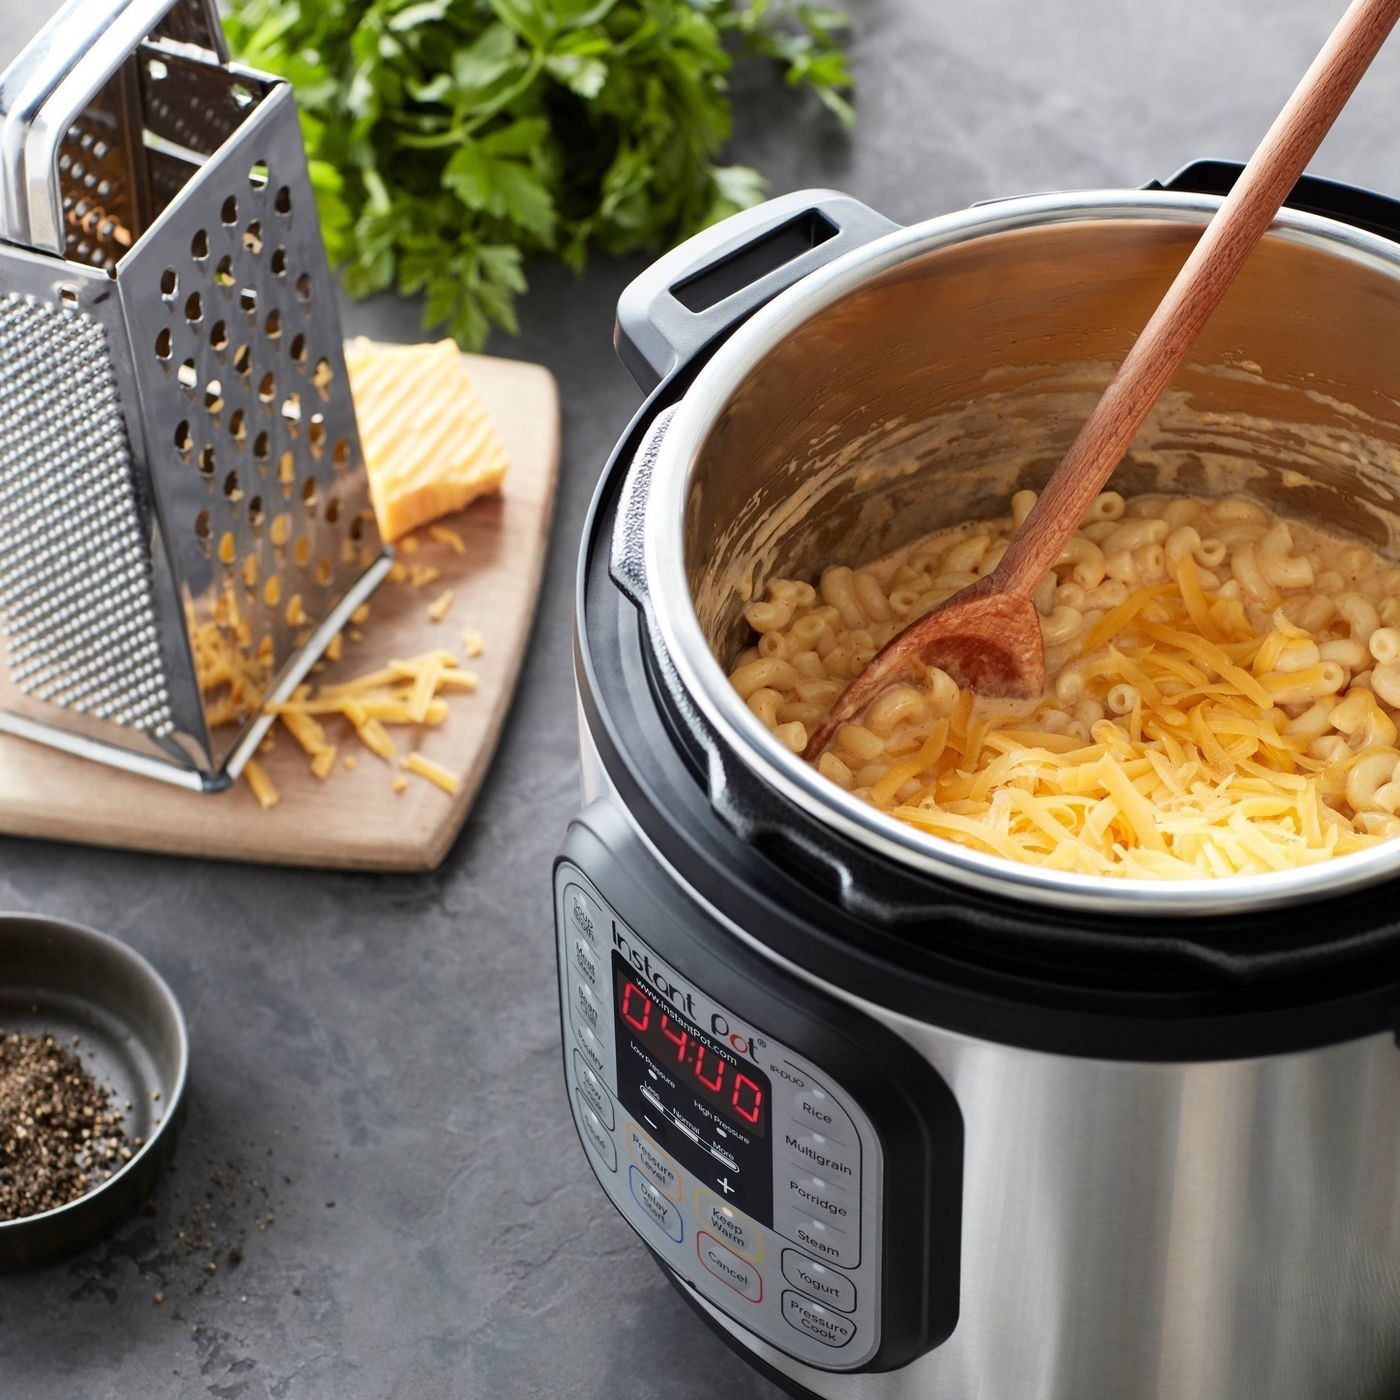 Instant pot with mac and cheese inside